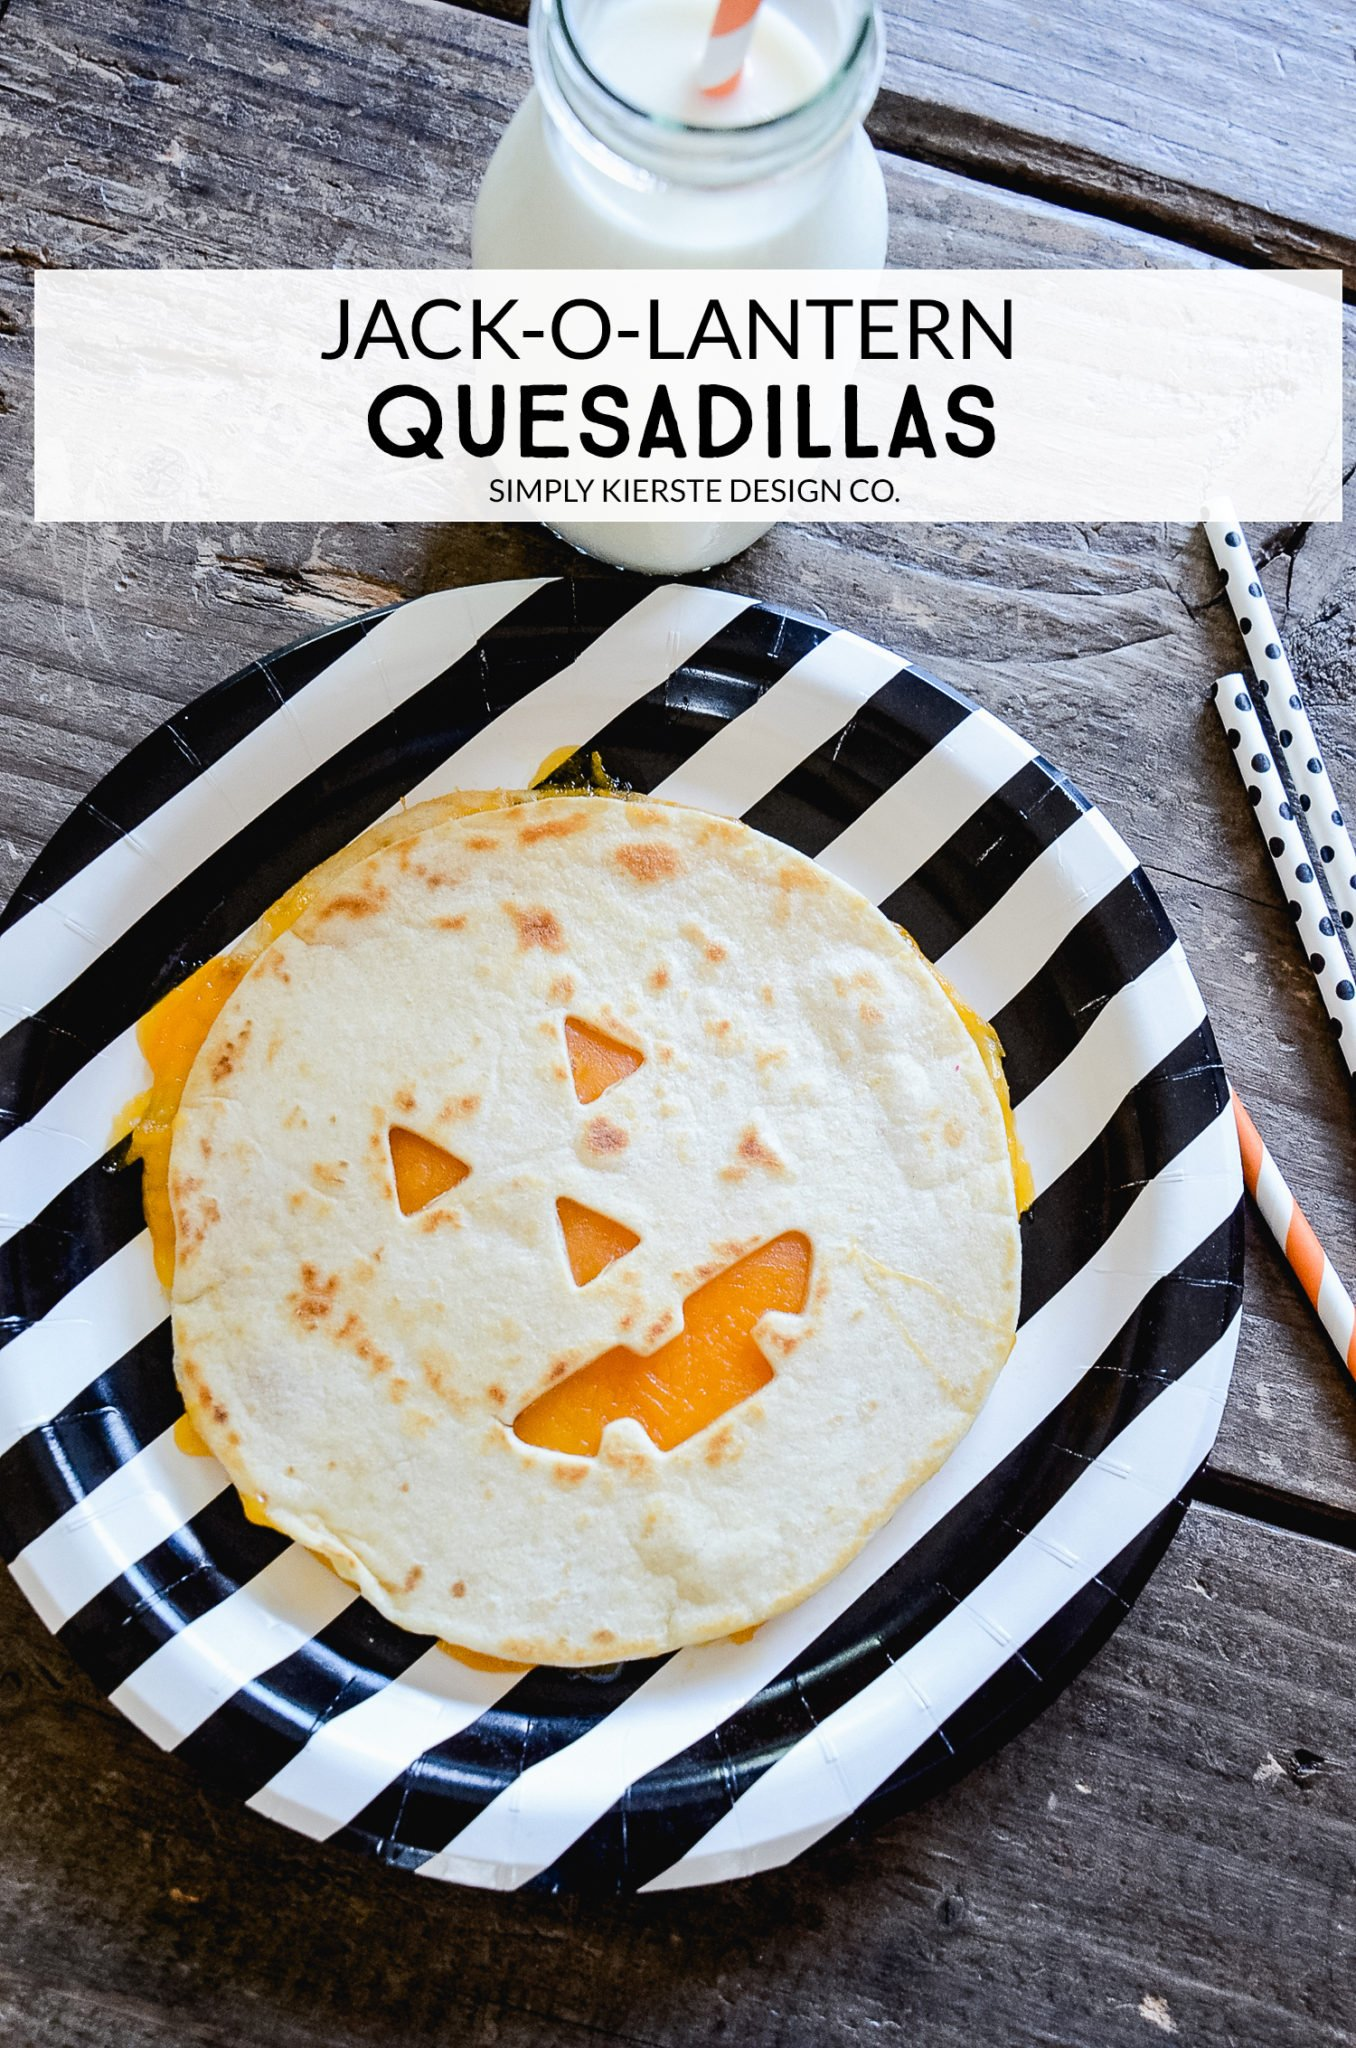 Jack-o-lantern Quesadillas | Easy Halloween Ideas | Halloween Dinner Ideas | oldsaltfarm.com